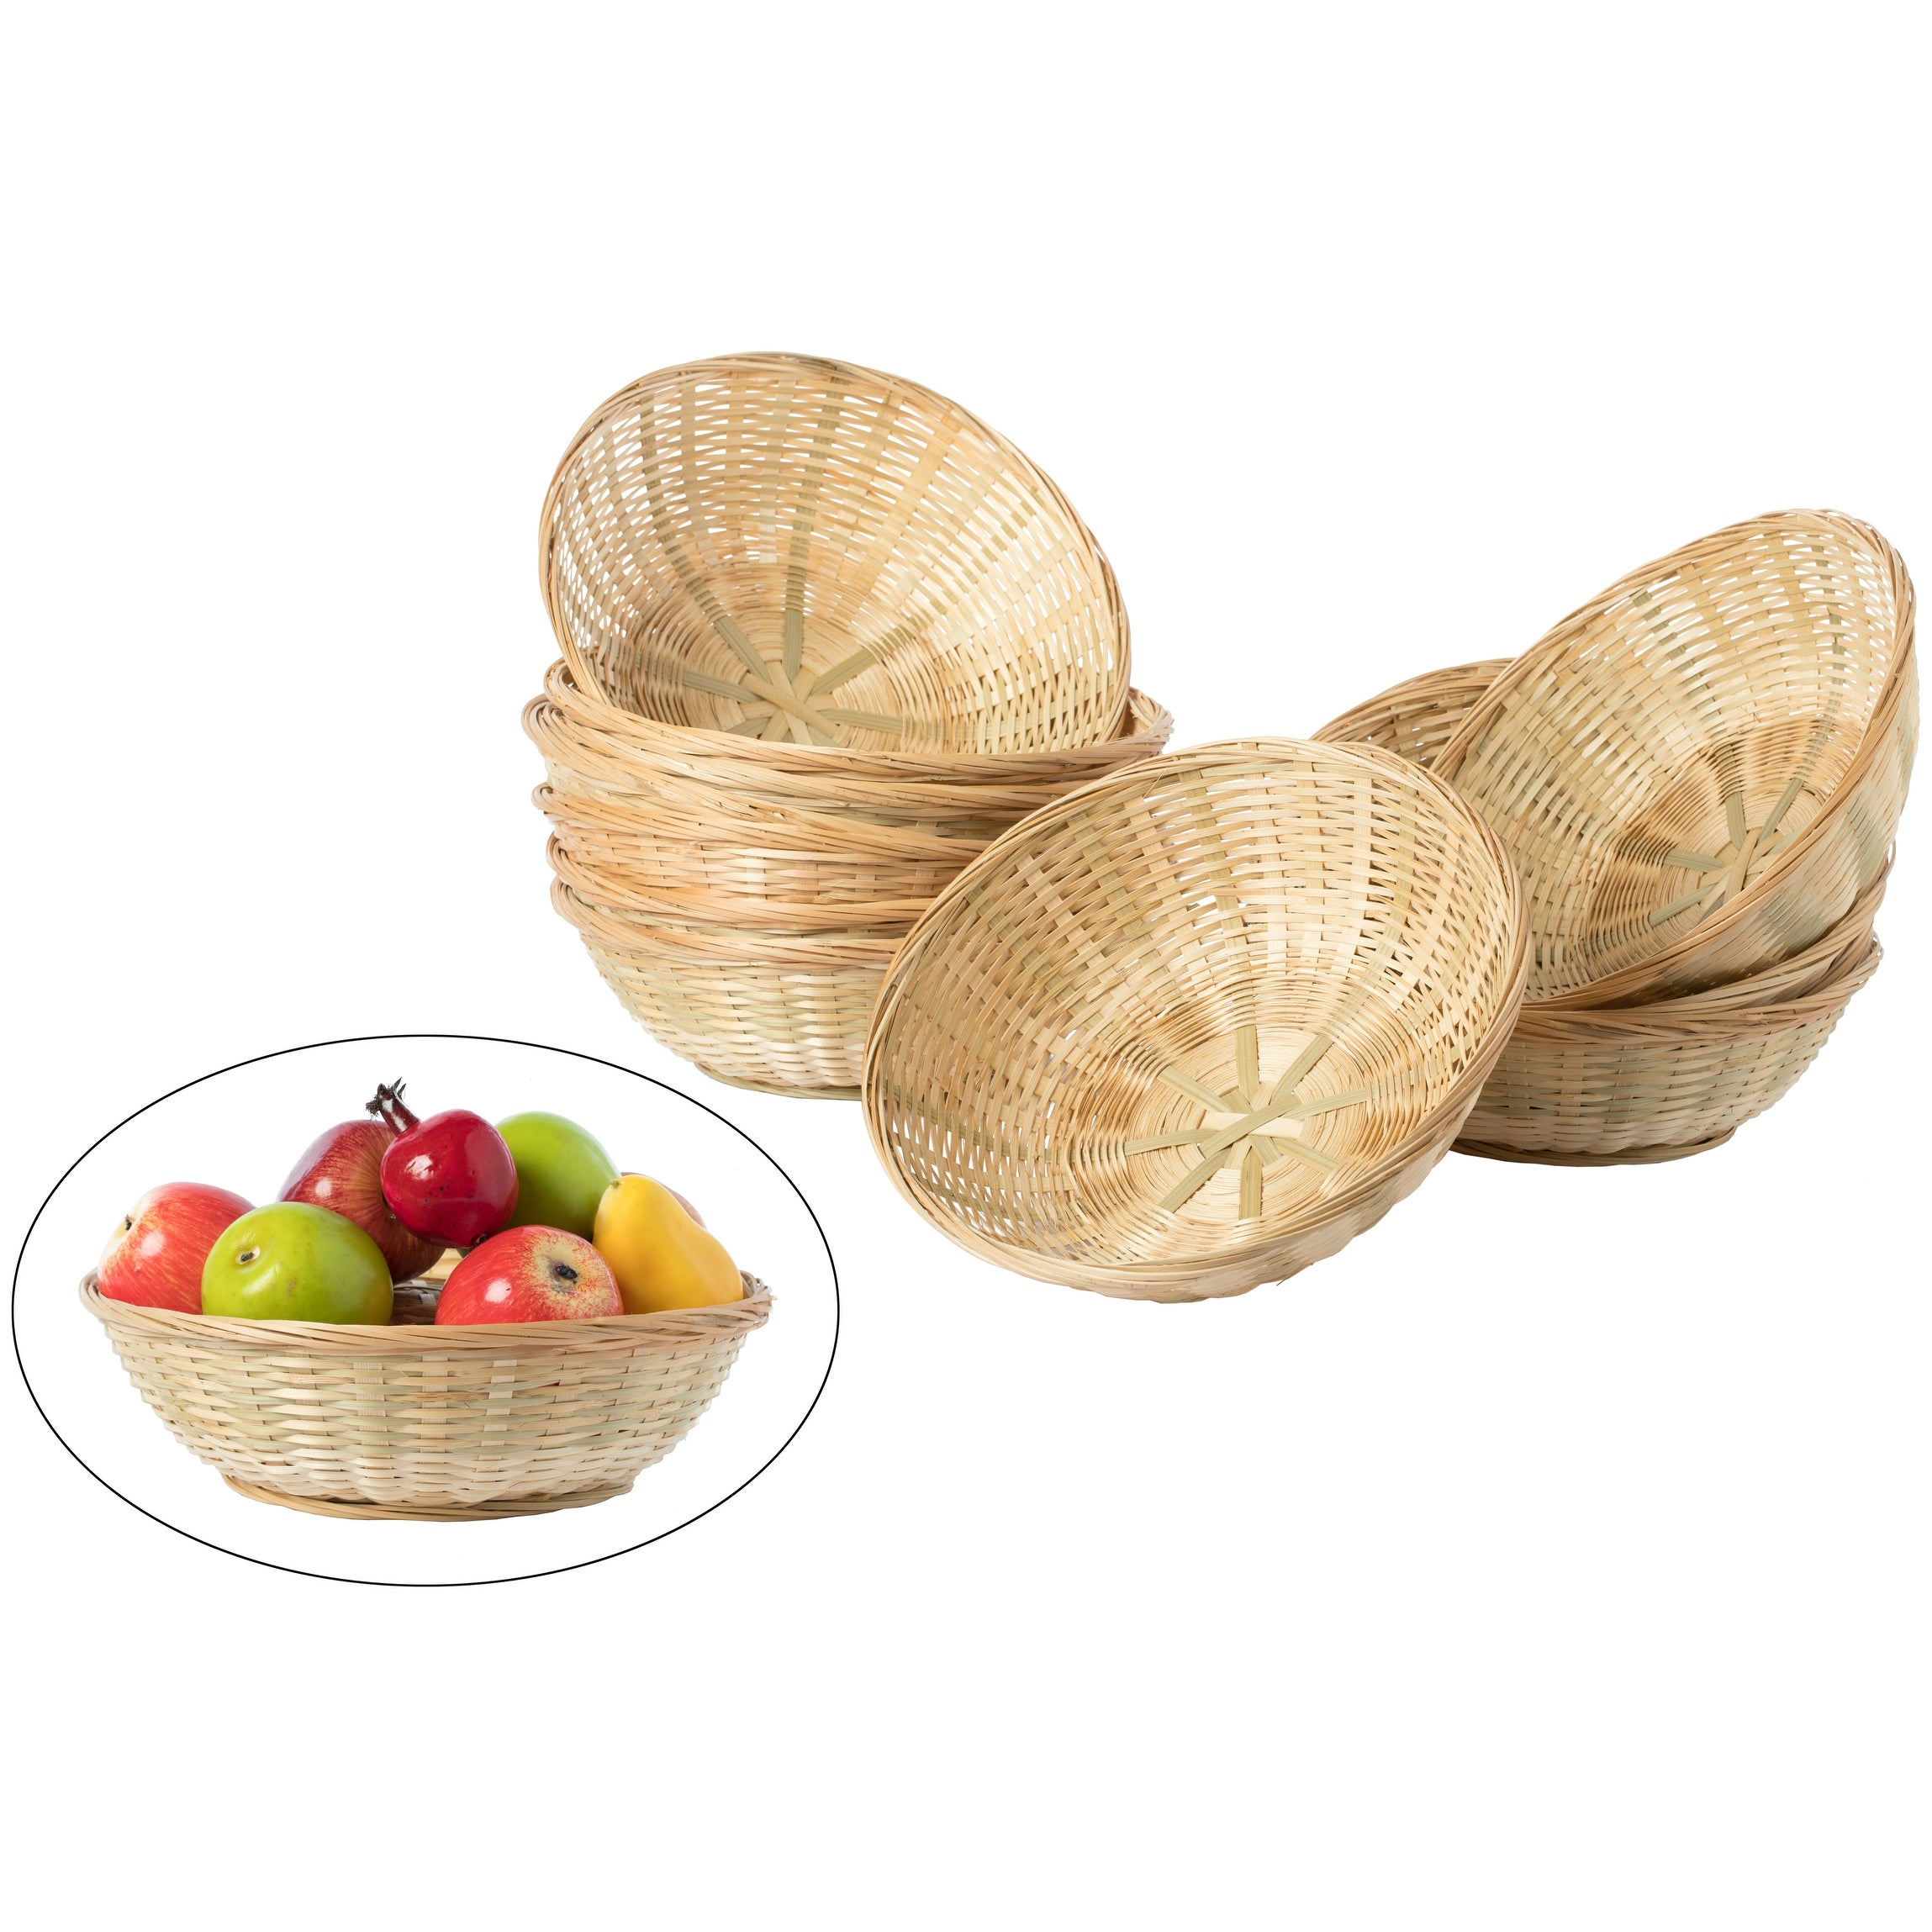 Rattan Hand-Woven Round Storage Basket Bread Fruit Decorative Tray Rustic Style